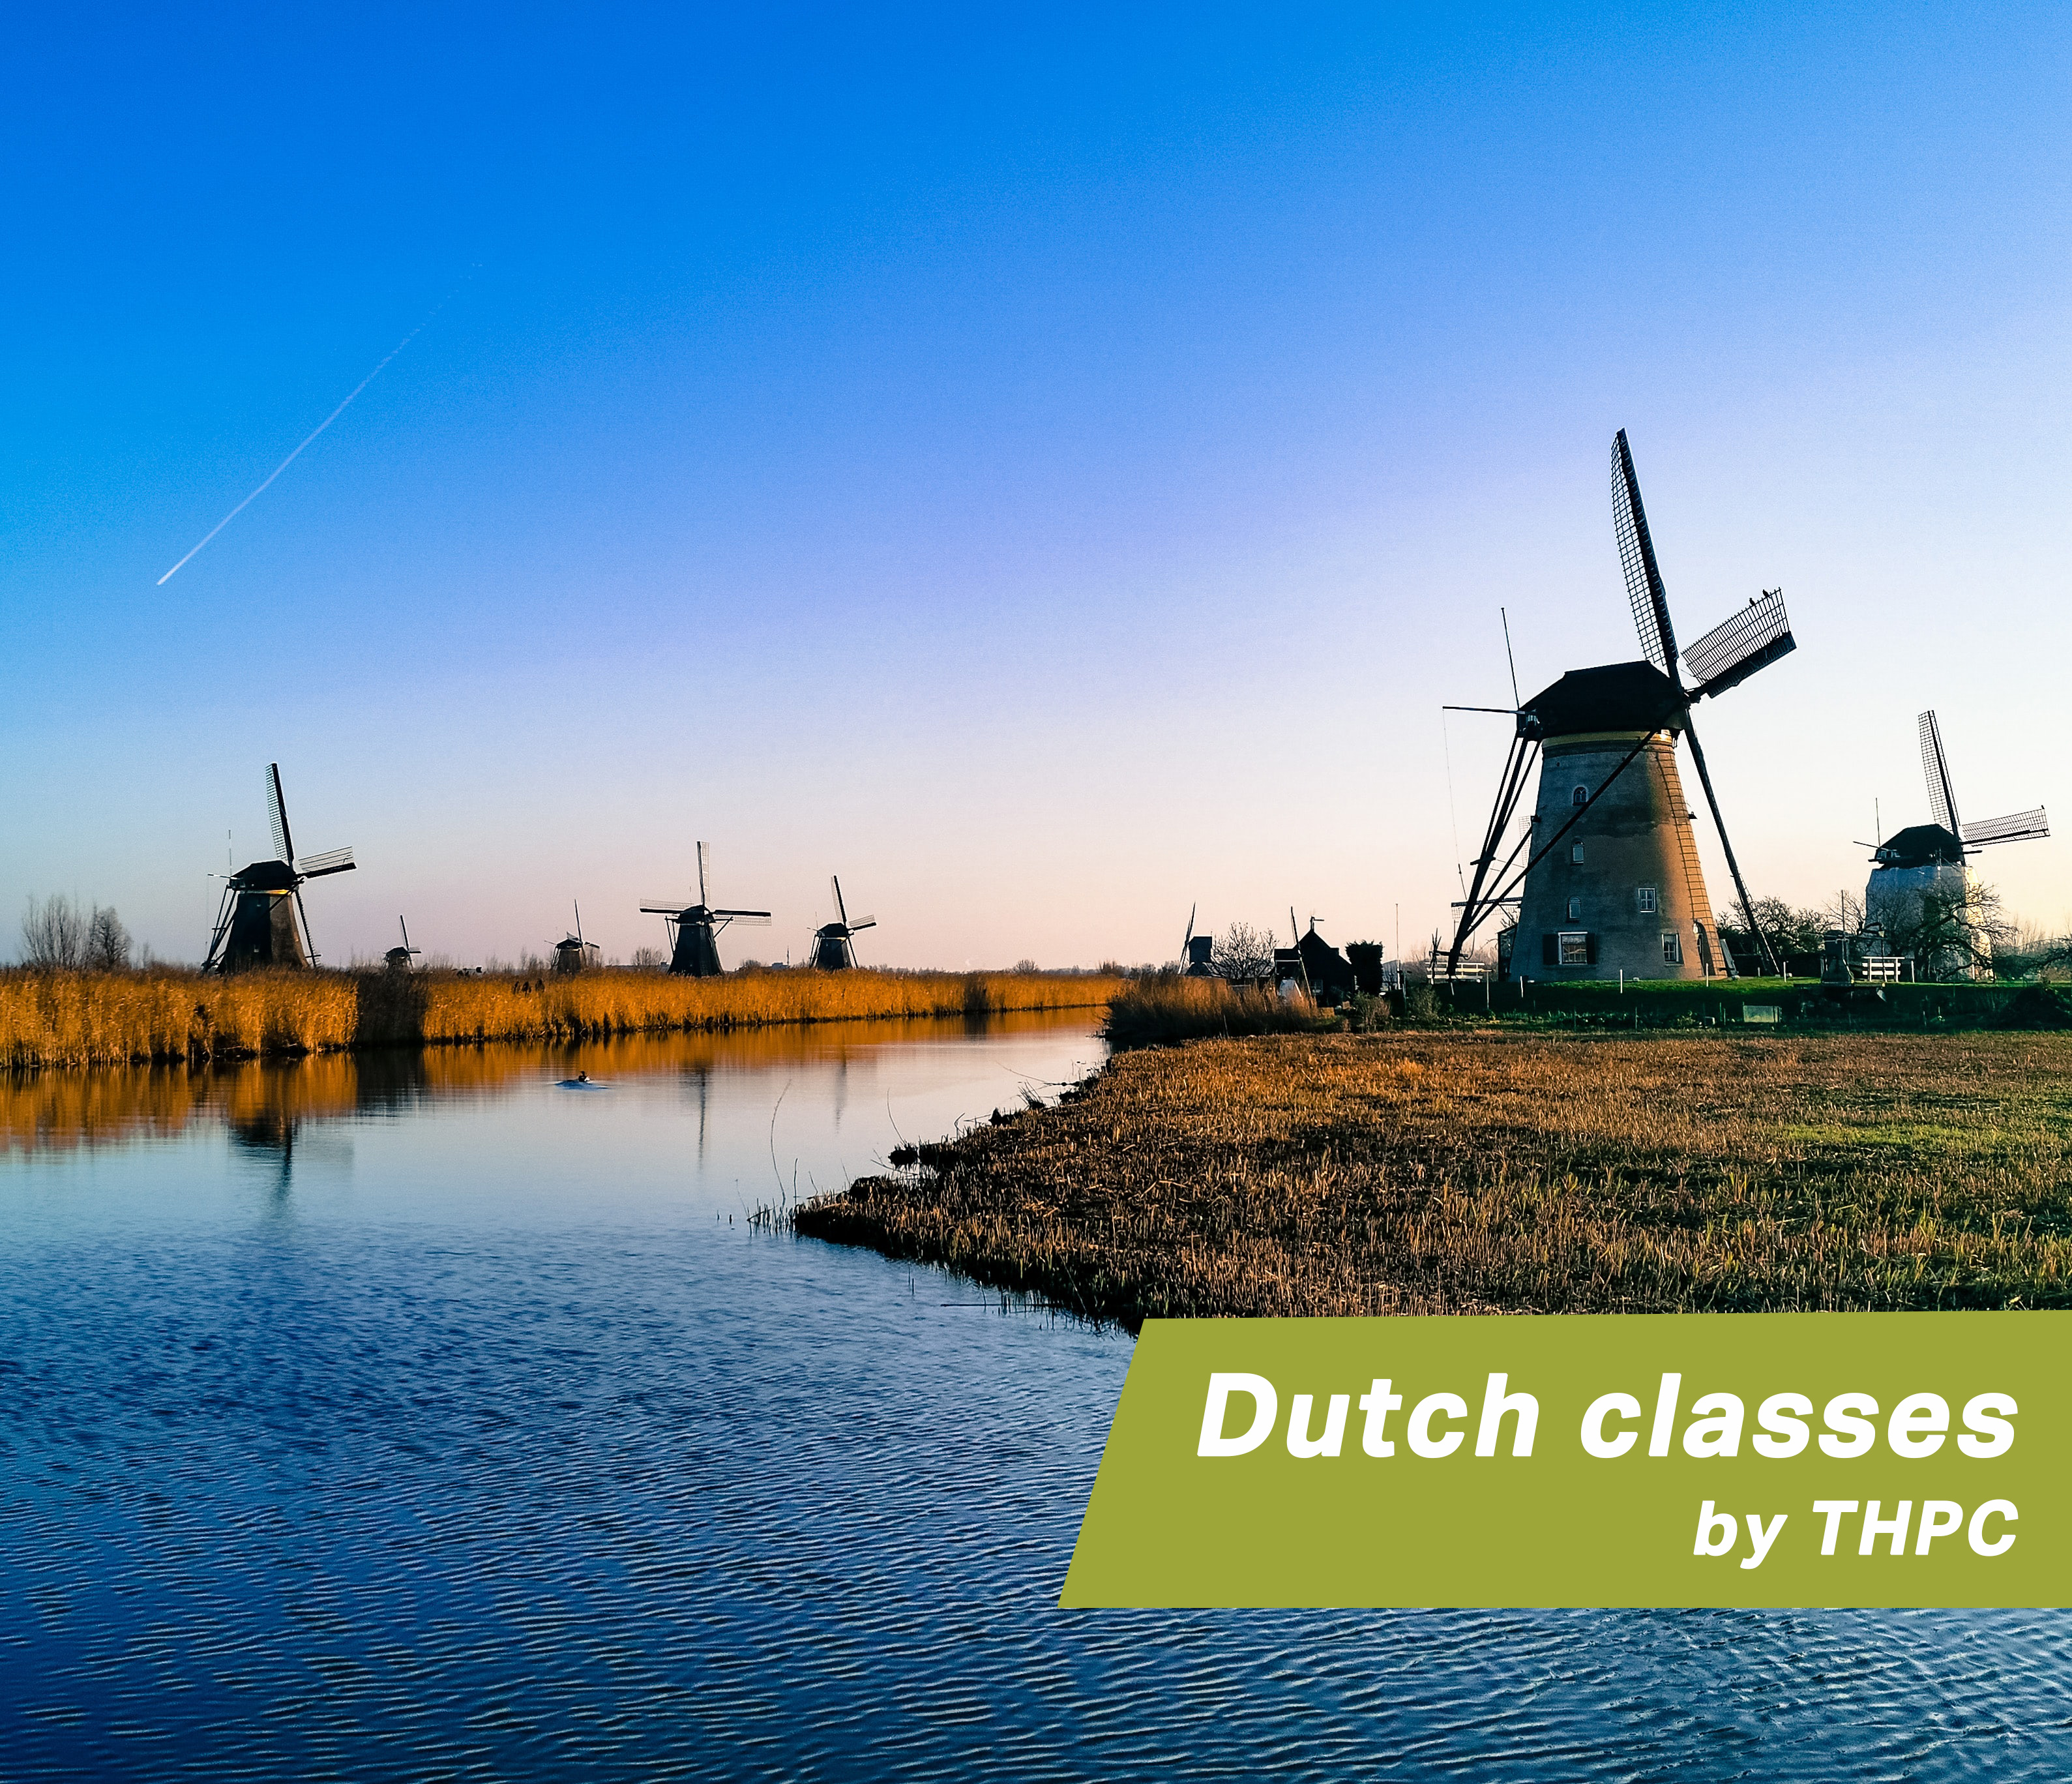 Dutch classes by THPC